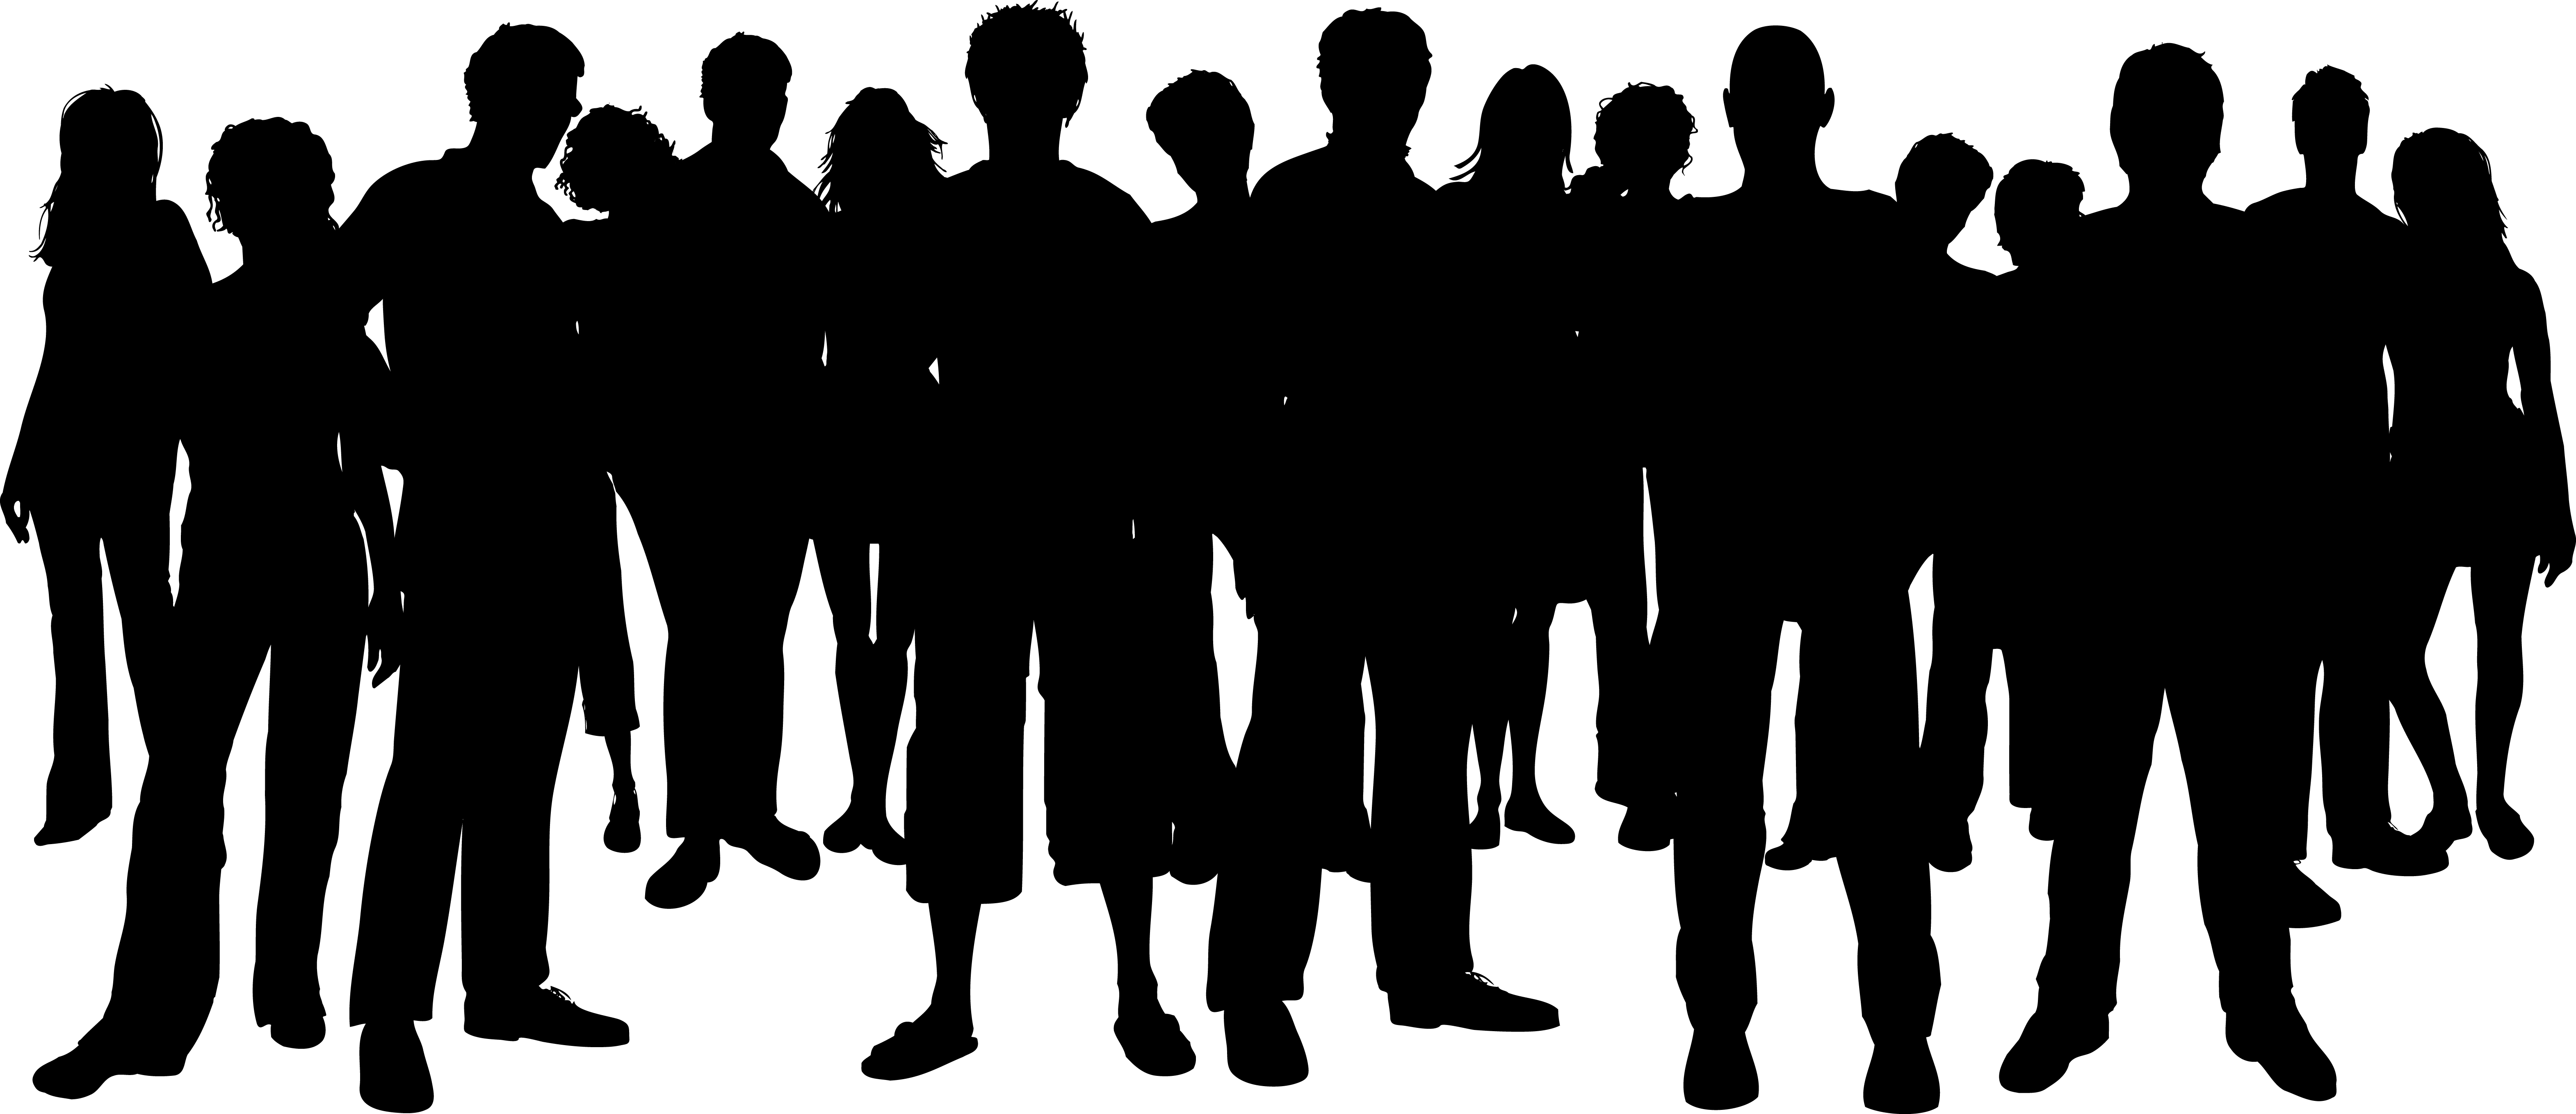 Best of people collection. Crowd clipart clip art black and white download